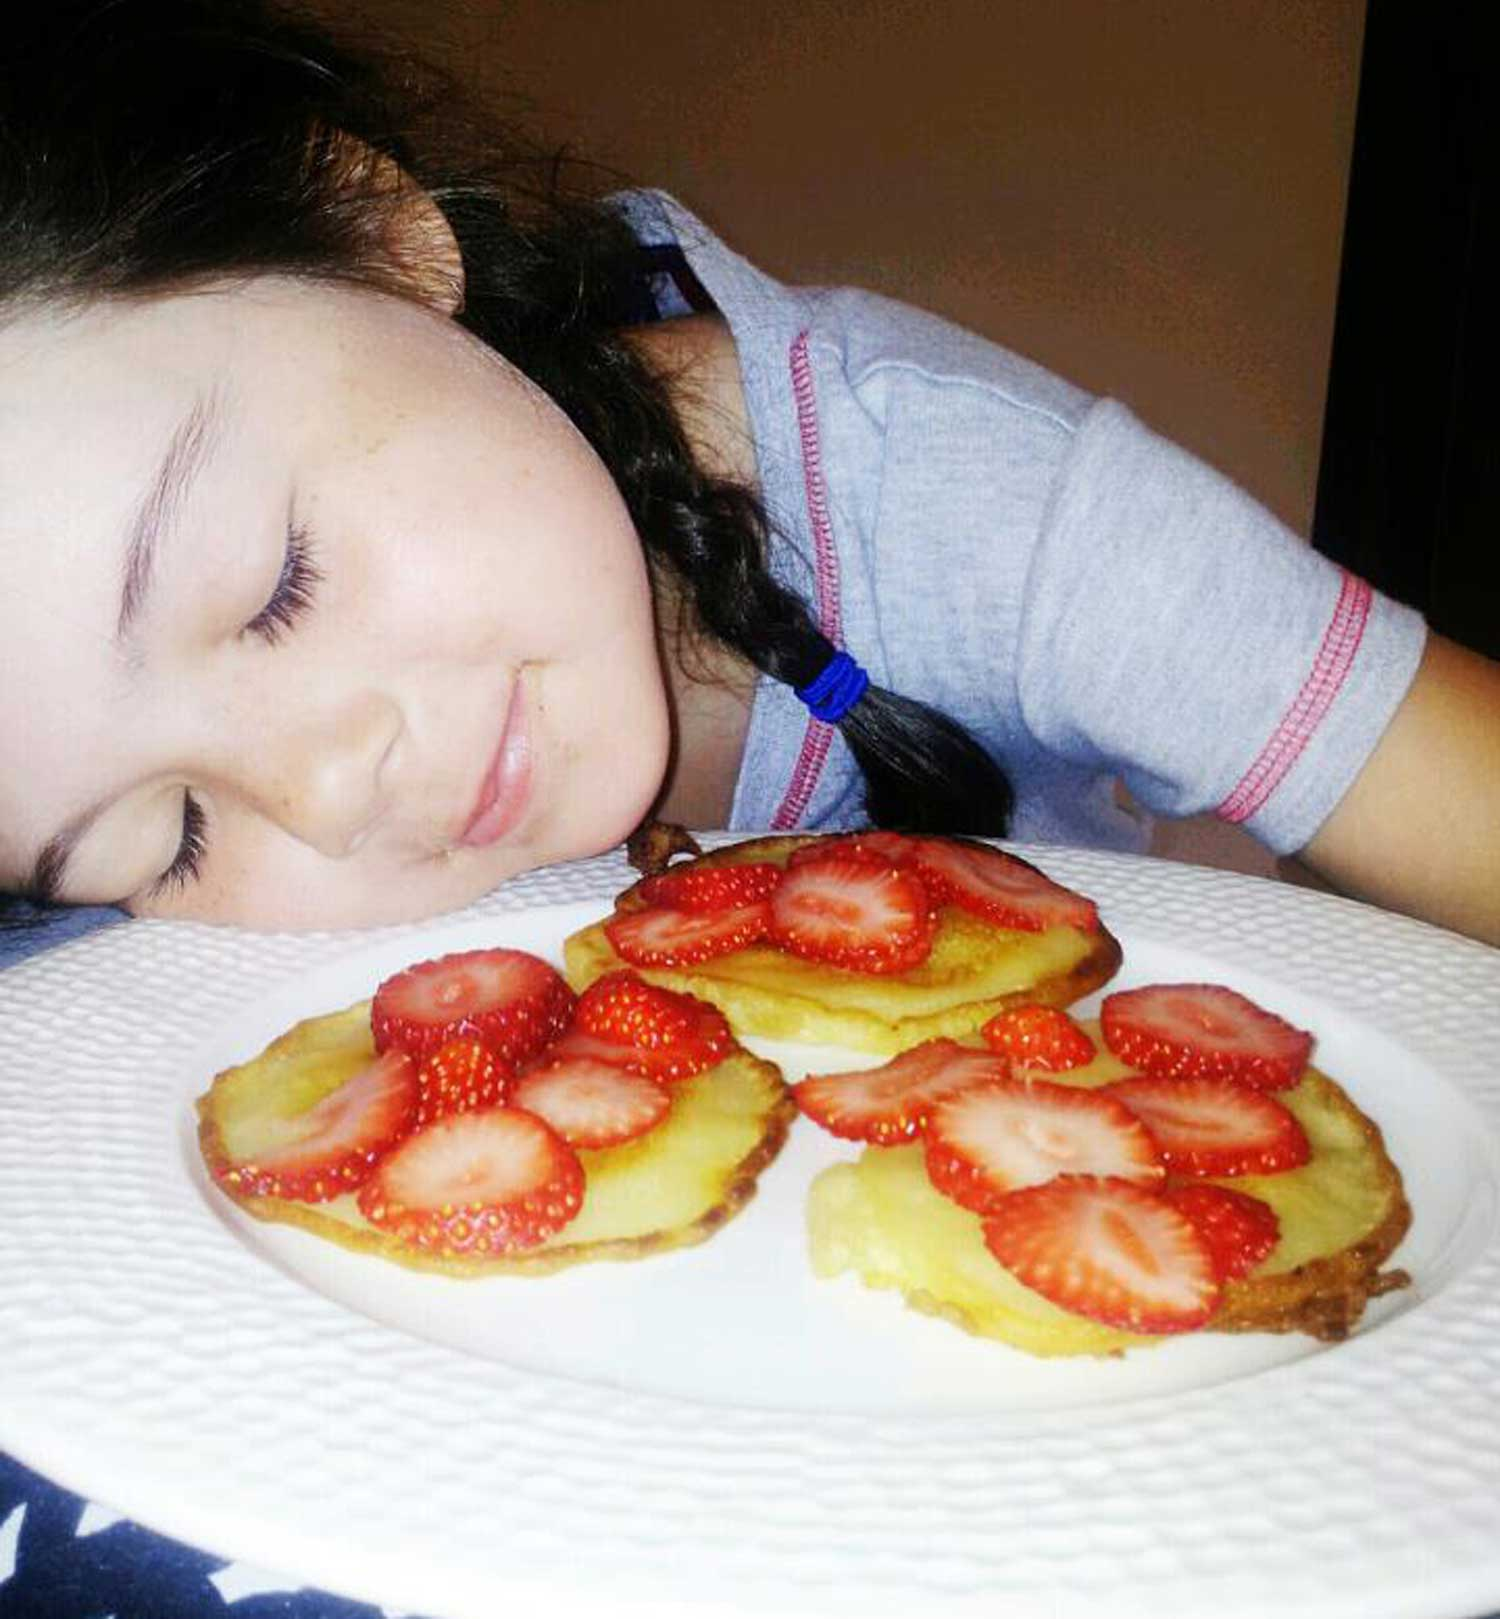 Tookii things to do with kids pancakes one of the activities for kids